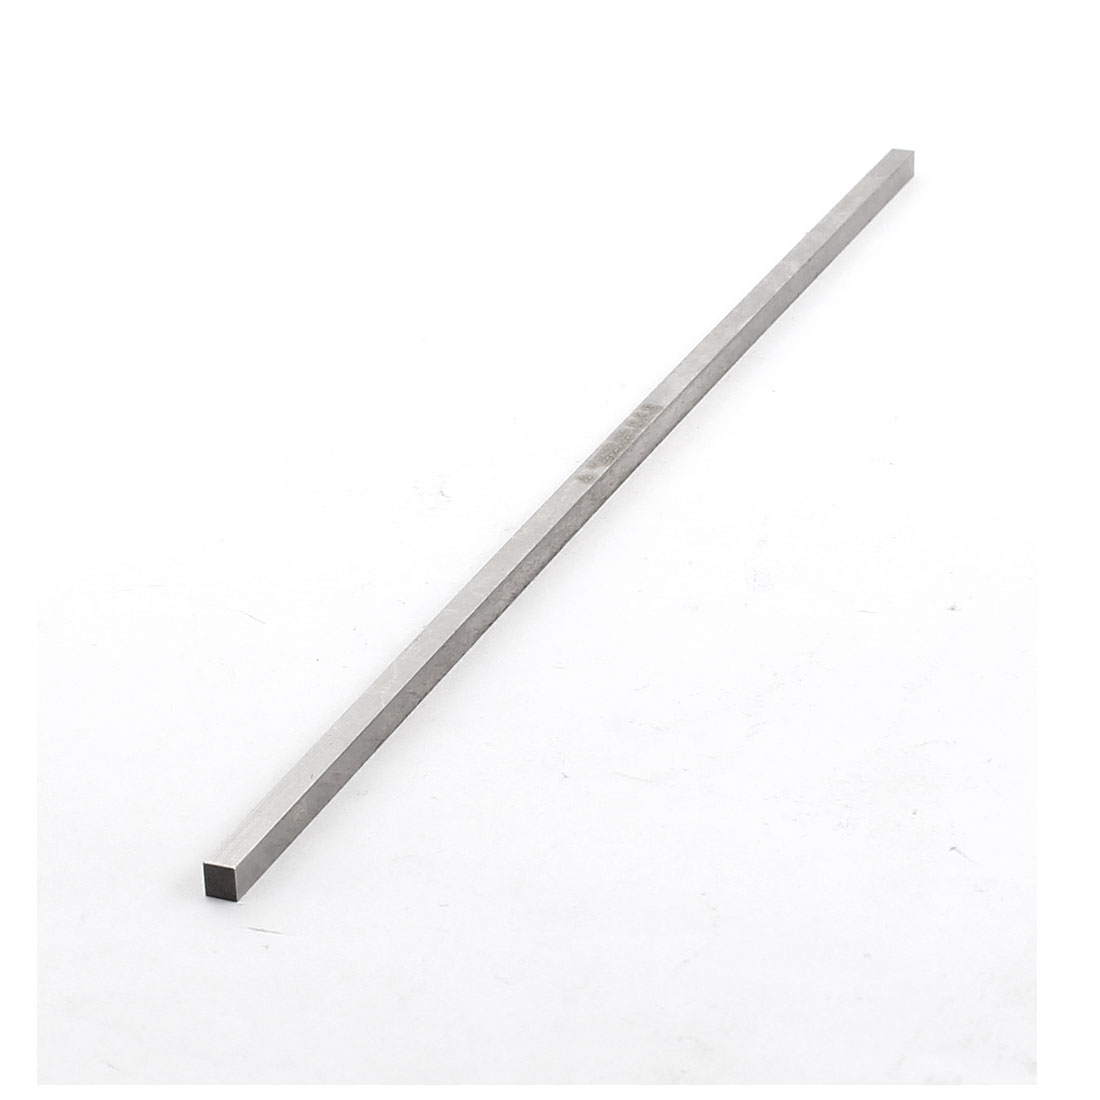 Parallelogram High Speed Steel Metalworker Engraving Parting Turning Milling Lathe HSS Tool Bit Boring Cutter 4mm x 4mm x 200mm